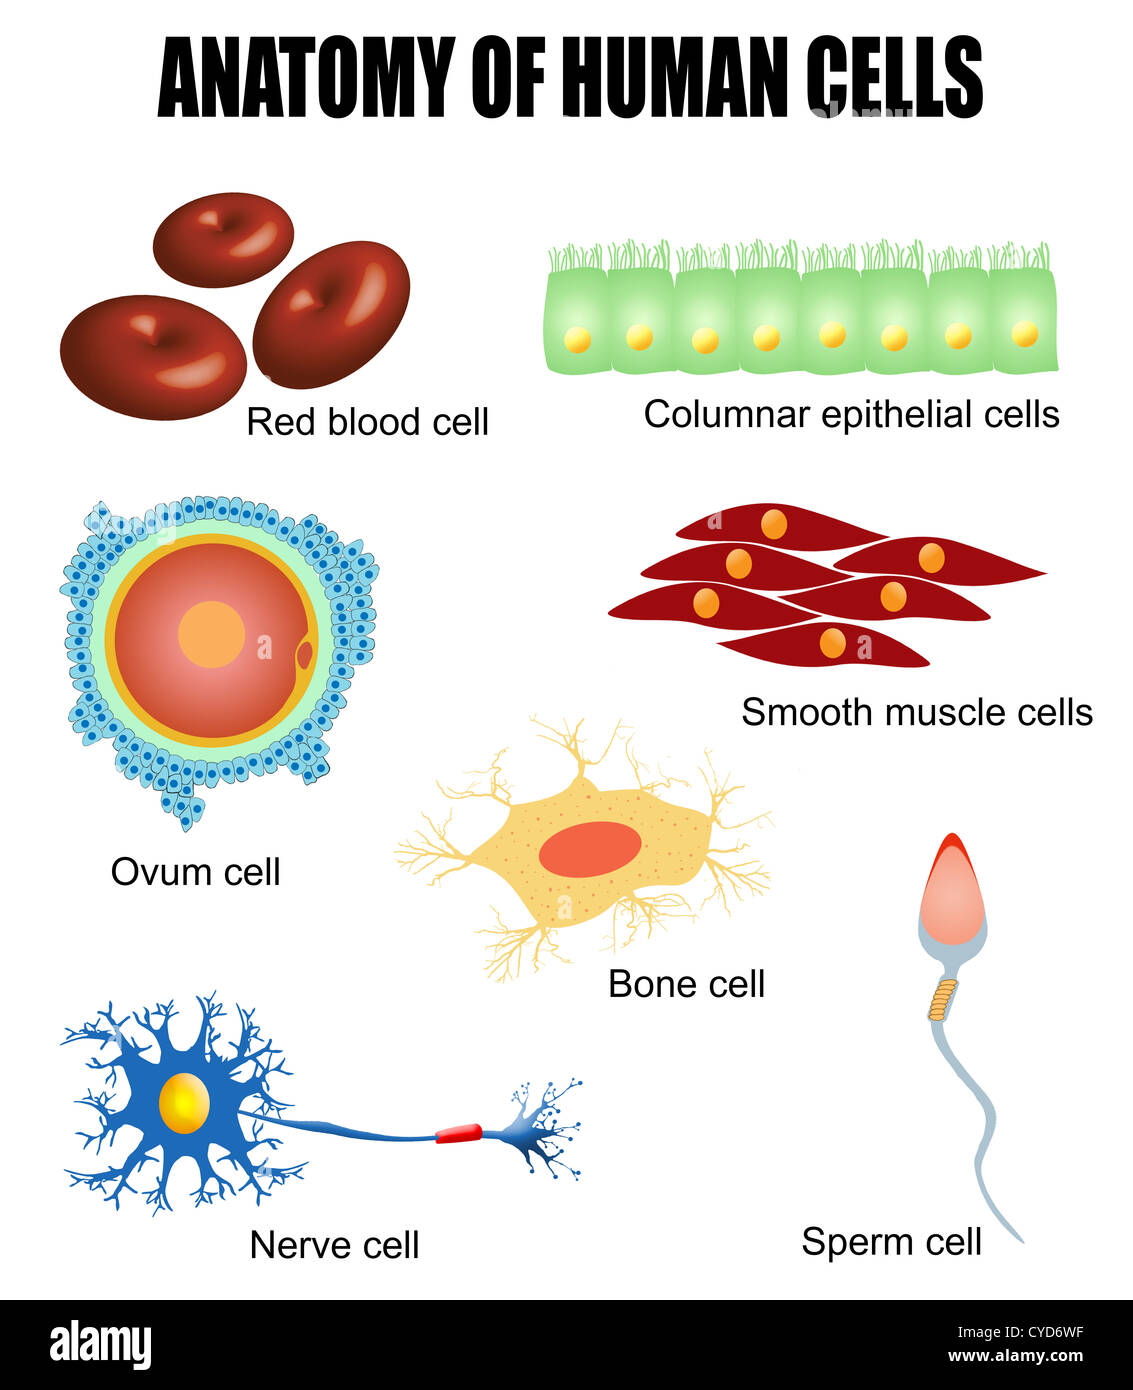 Anatomy Of Different Human Cells Poster Stock Photo